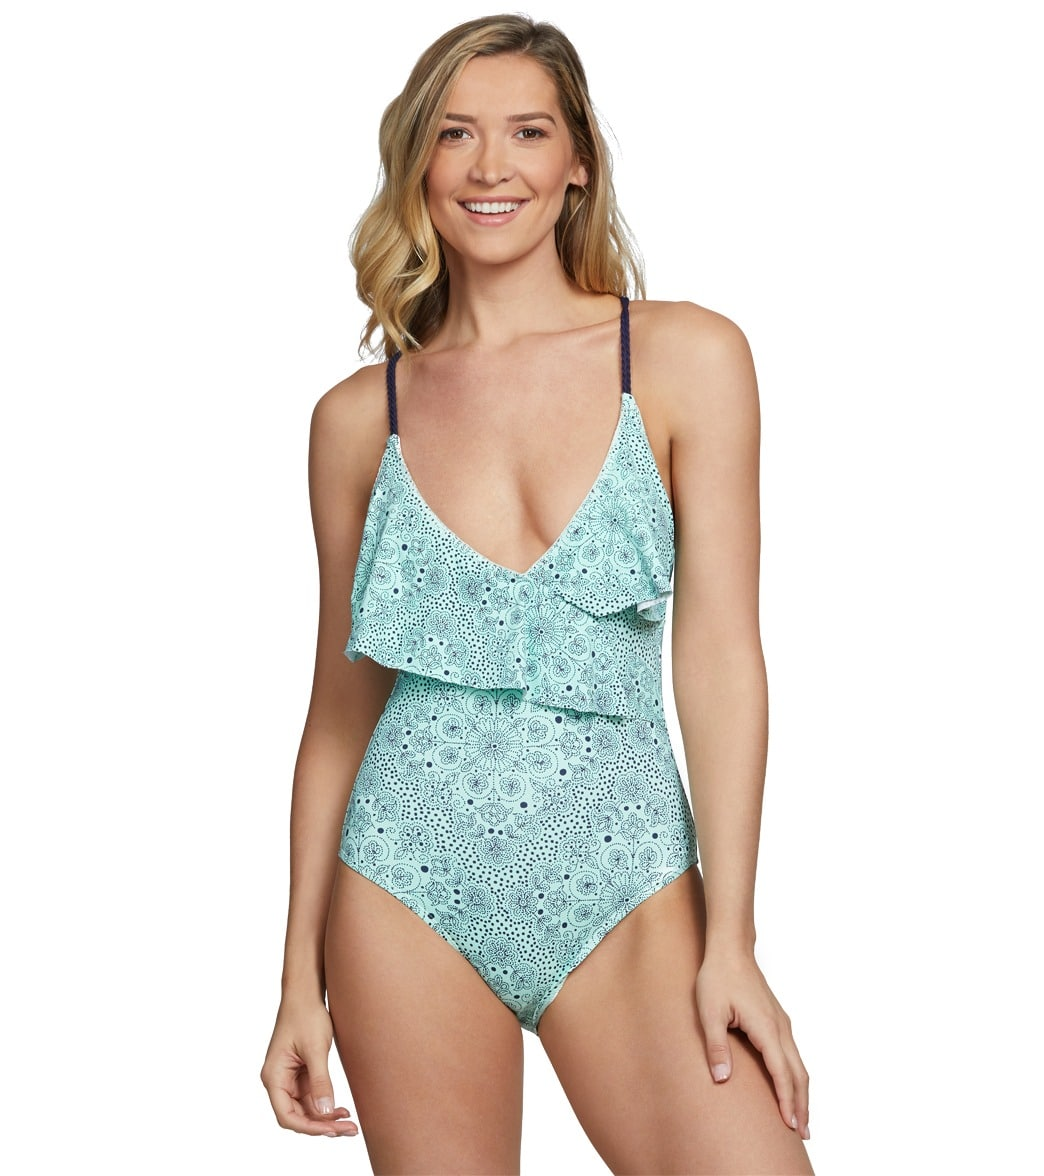 b2937136dde Anne Cole Mykonos Medallion V-Neck One Piece Swimsuit at SwimOutlet.com -  Free Shipping